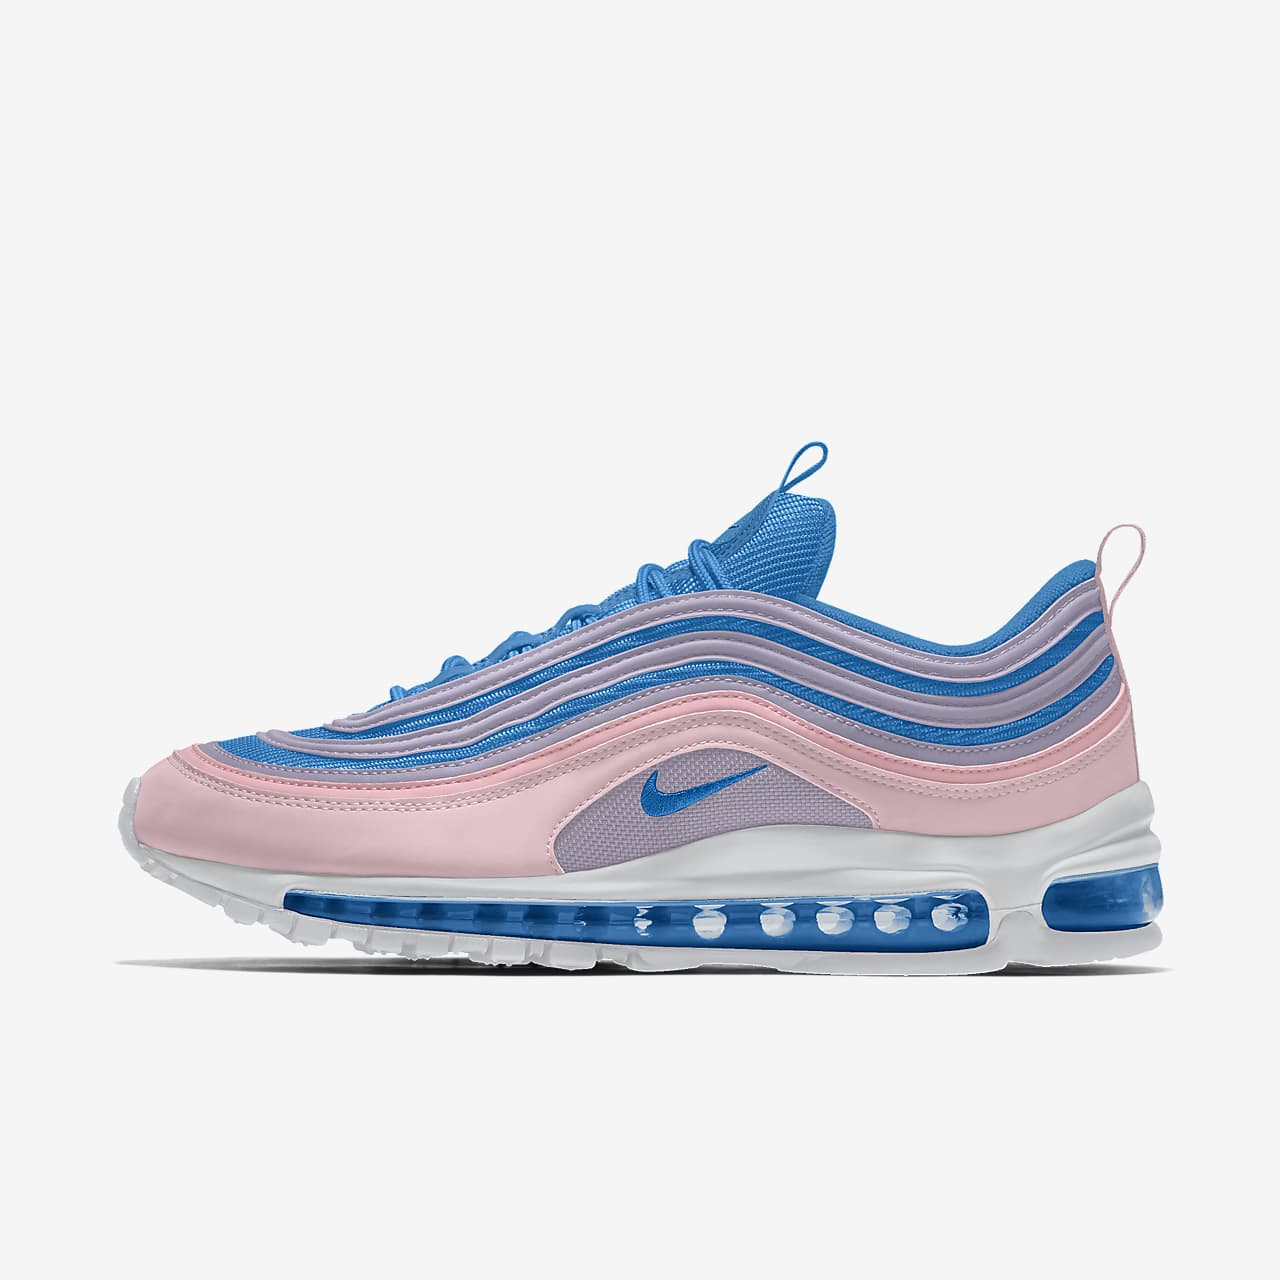 Chaussure personnalisable Nike Air Max 97 By You